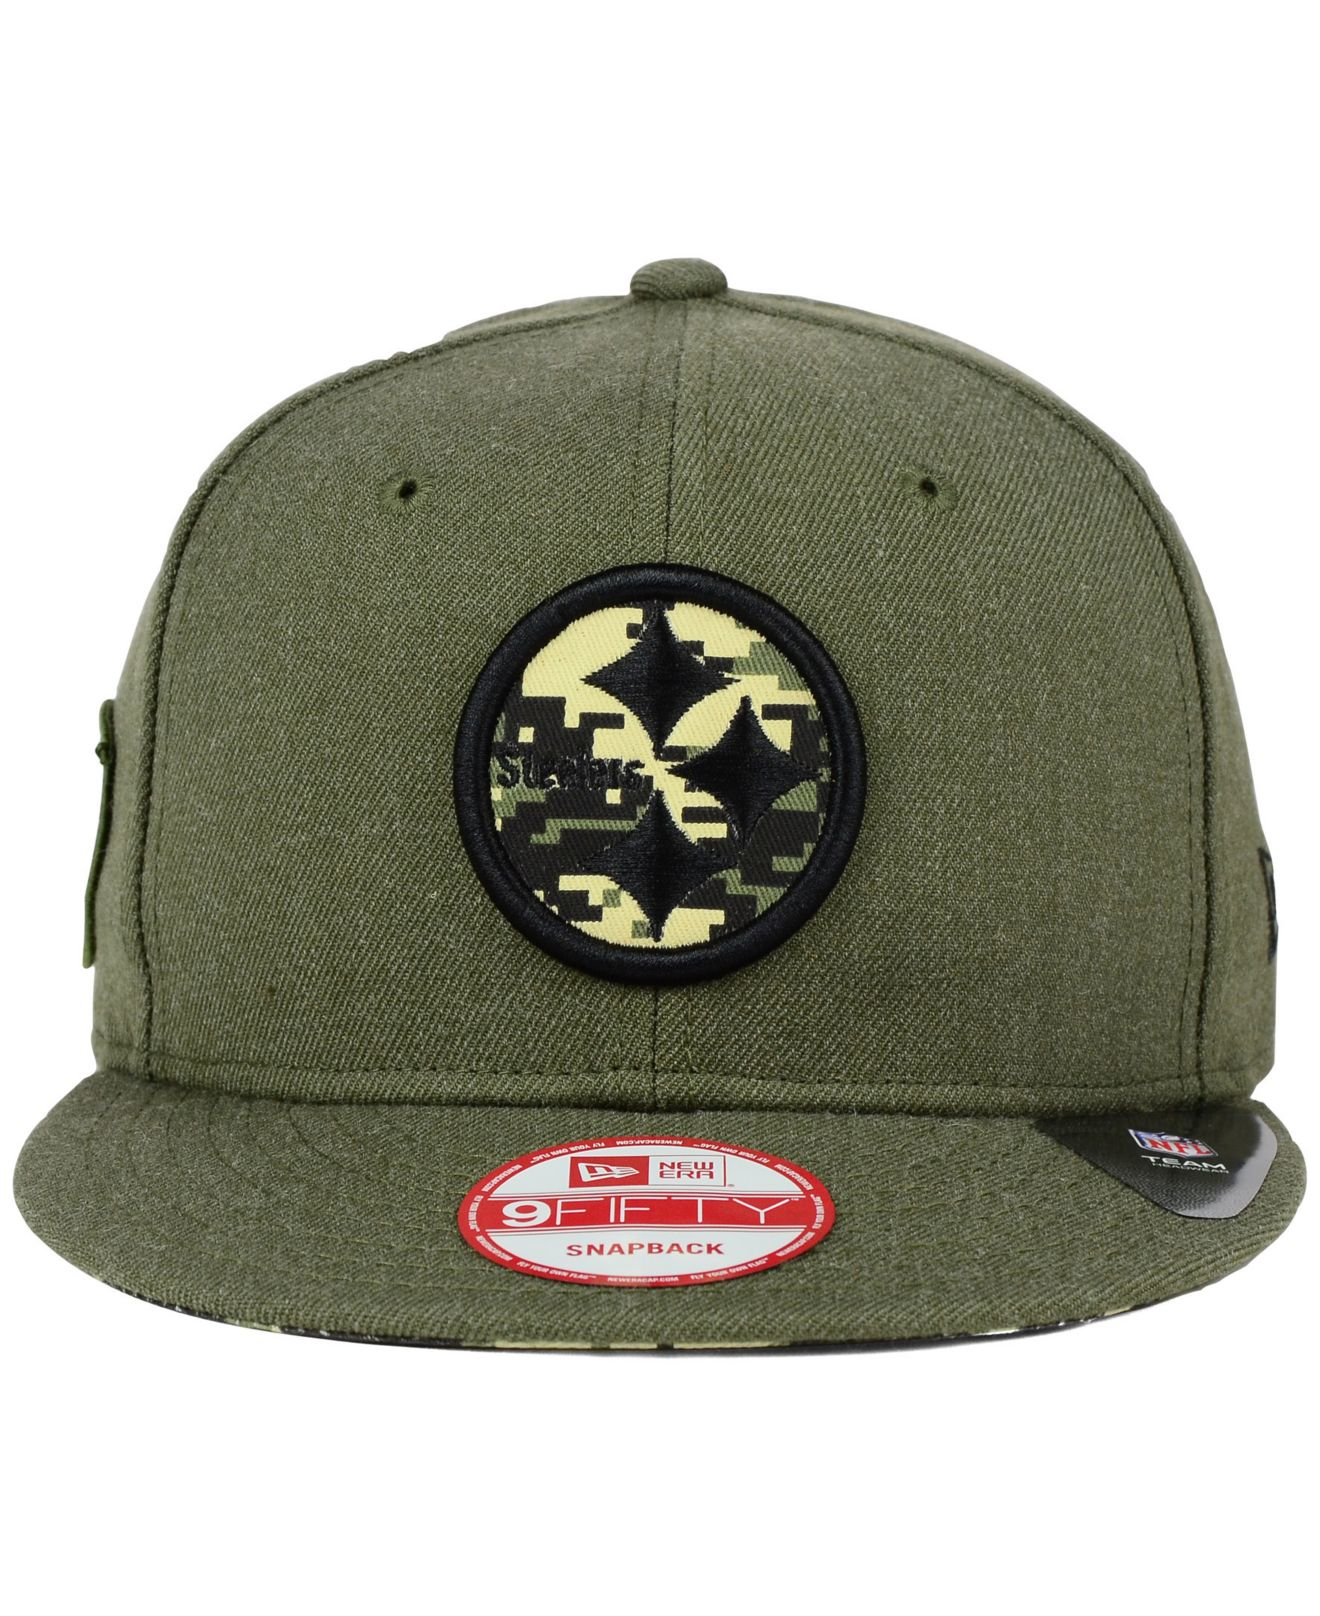 8620409e1c2 Lyst - Ktz Pittsburgh Steelers Camo 9fifty Snapback Cap in Green for Men